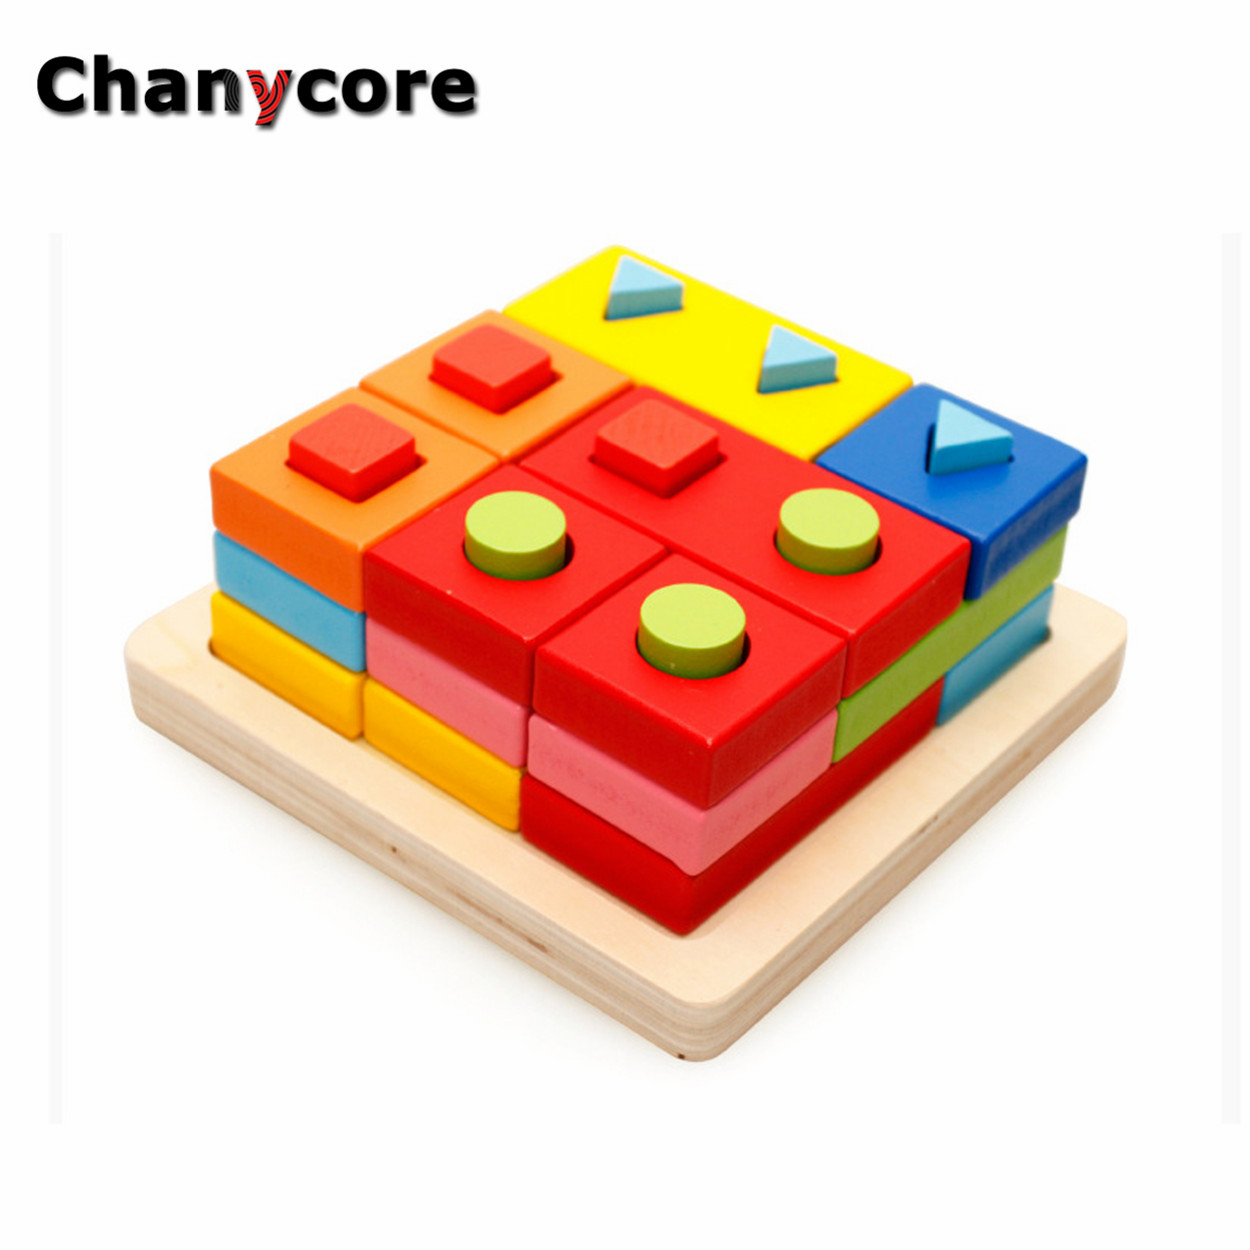 Baby Learning Educational Wooden Toys Geometric Shape Blocks Column Board Sorting Matching mwz Montessori Kids Gifts 4089